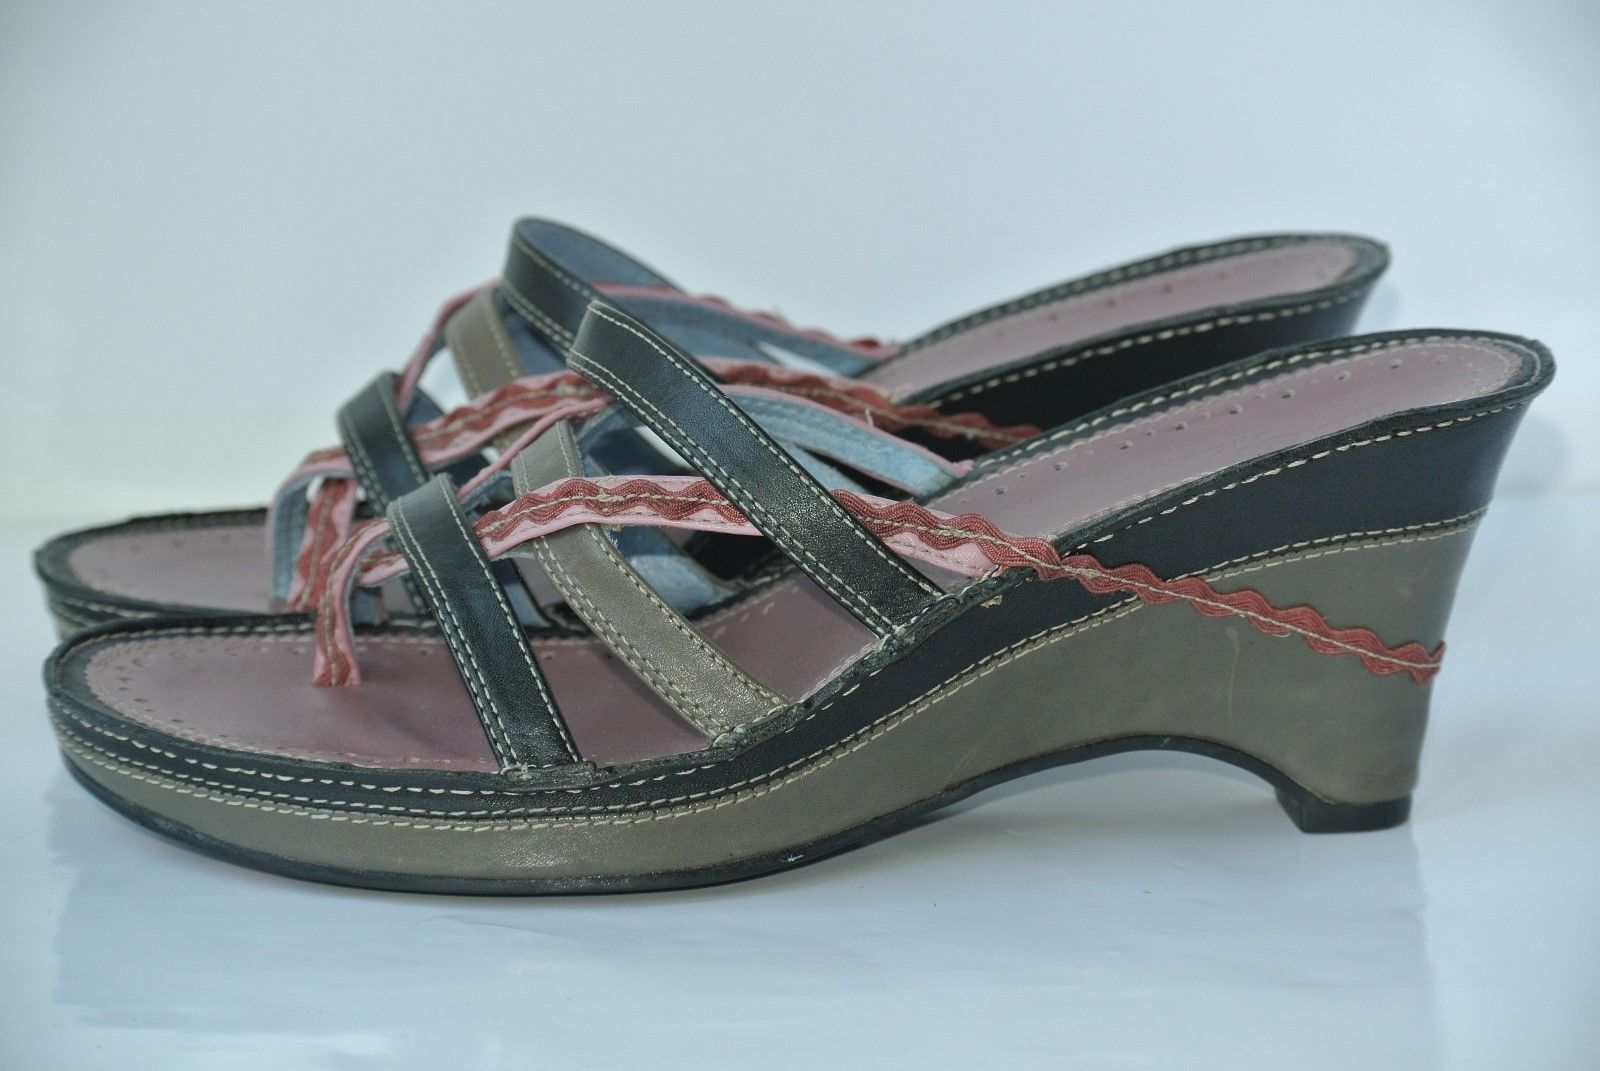 cff884b2f7d 57. 57. Previous. Clarks Indigo Womens 7 M Black Gray Pink Leather Wedge  Heel Strappy Sandals NICE